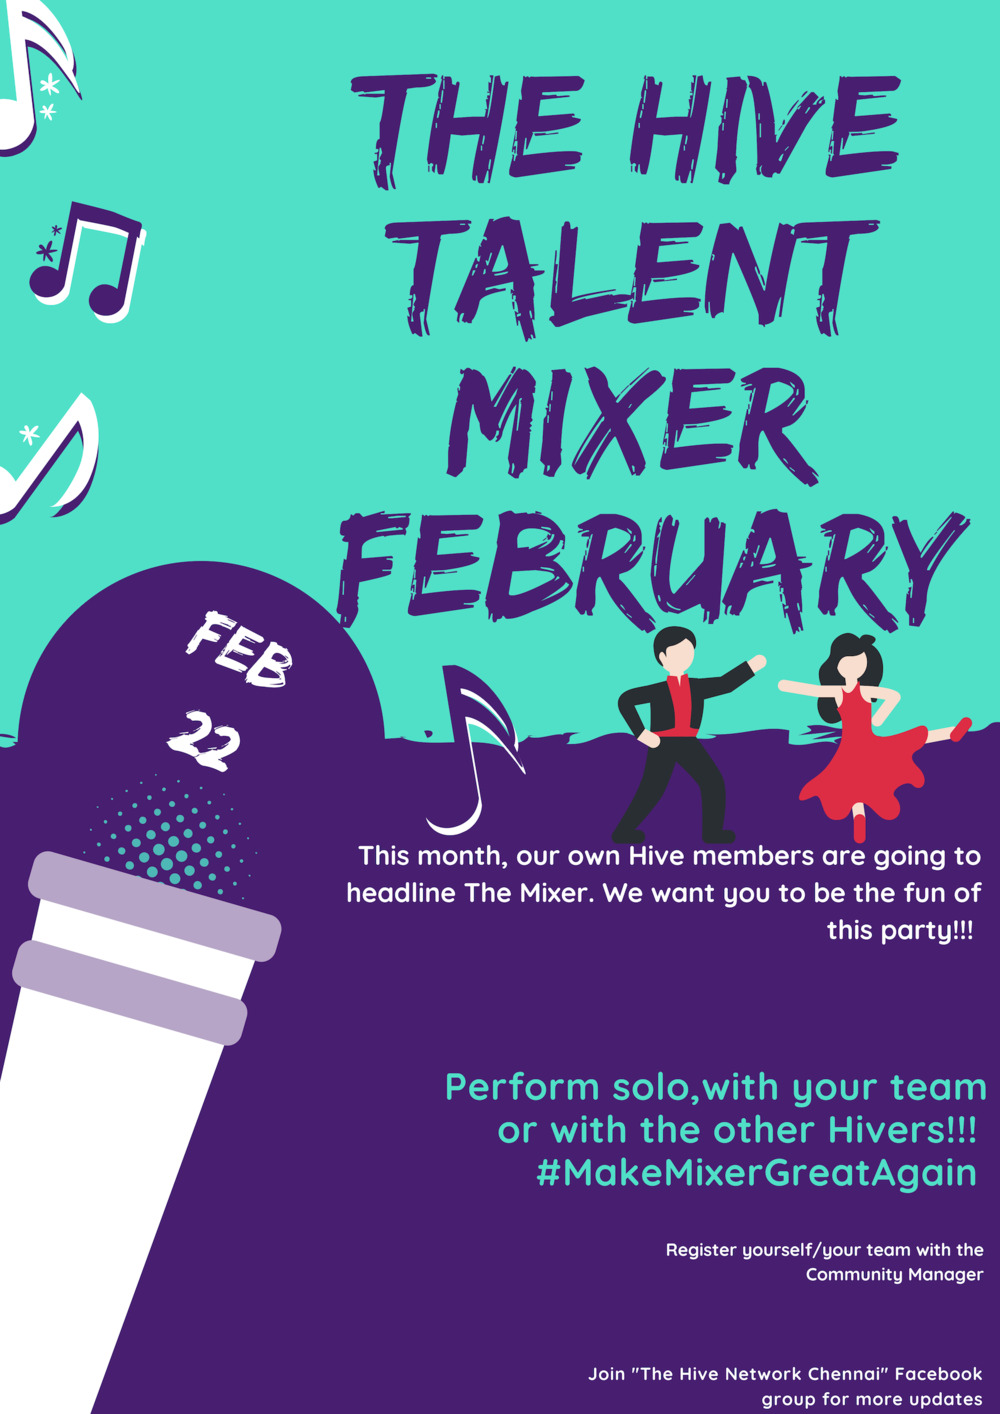 the hive talent mixer february1.png